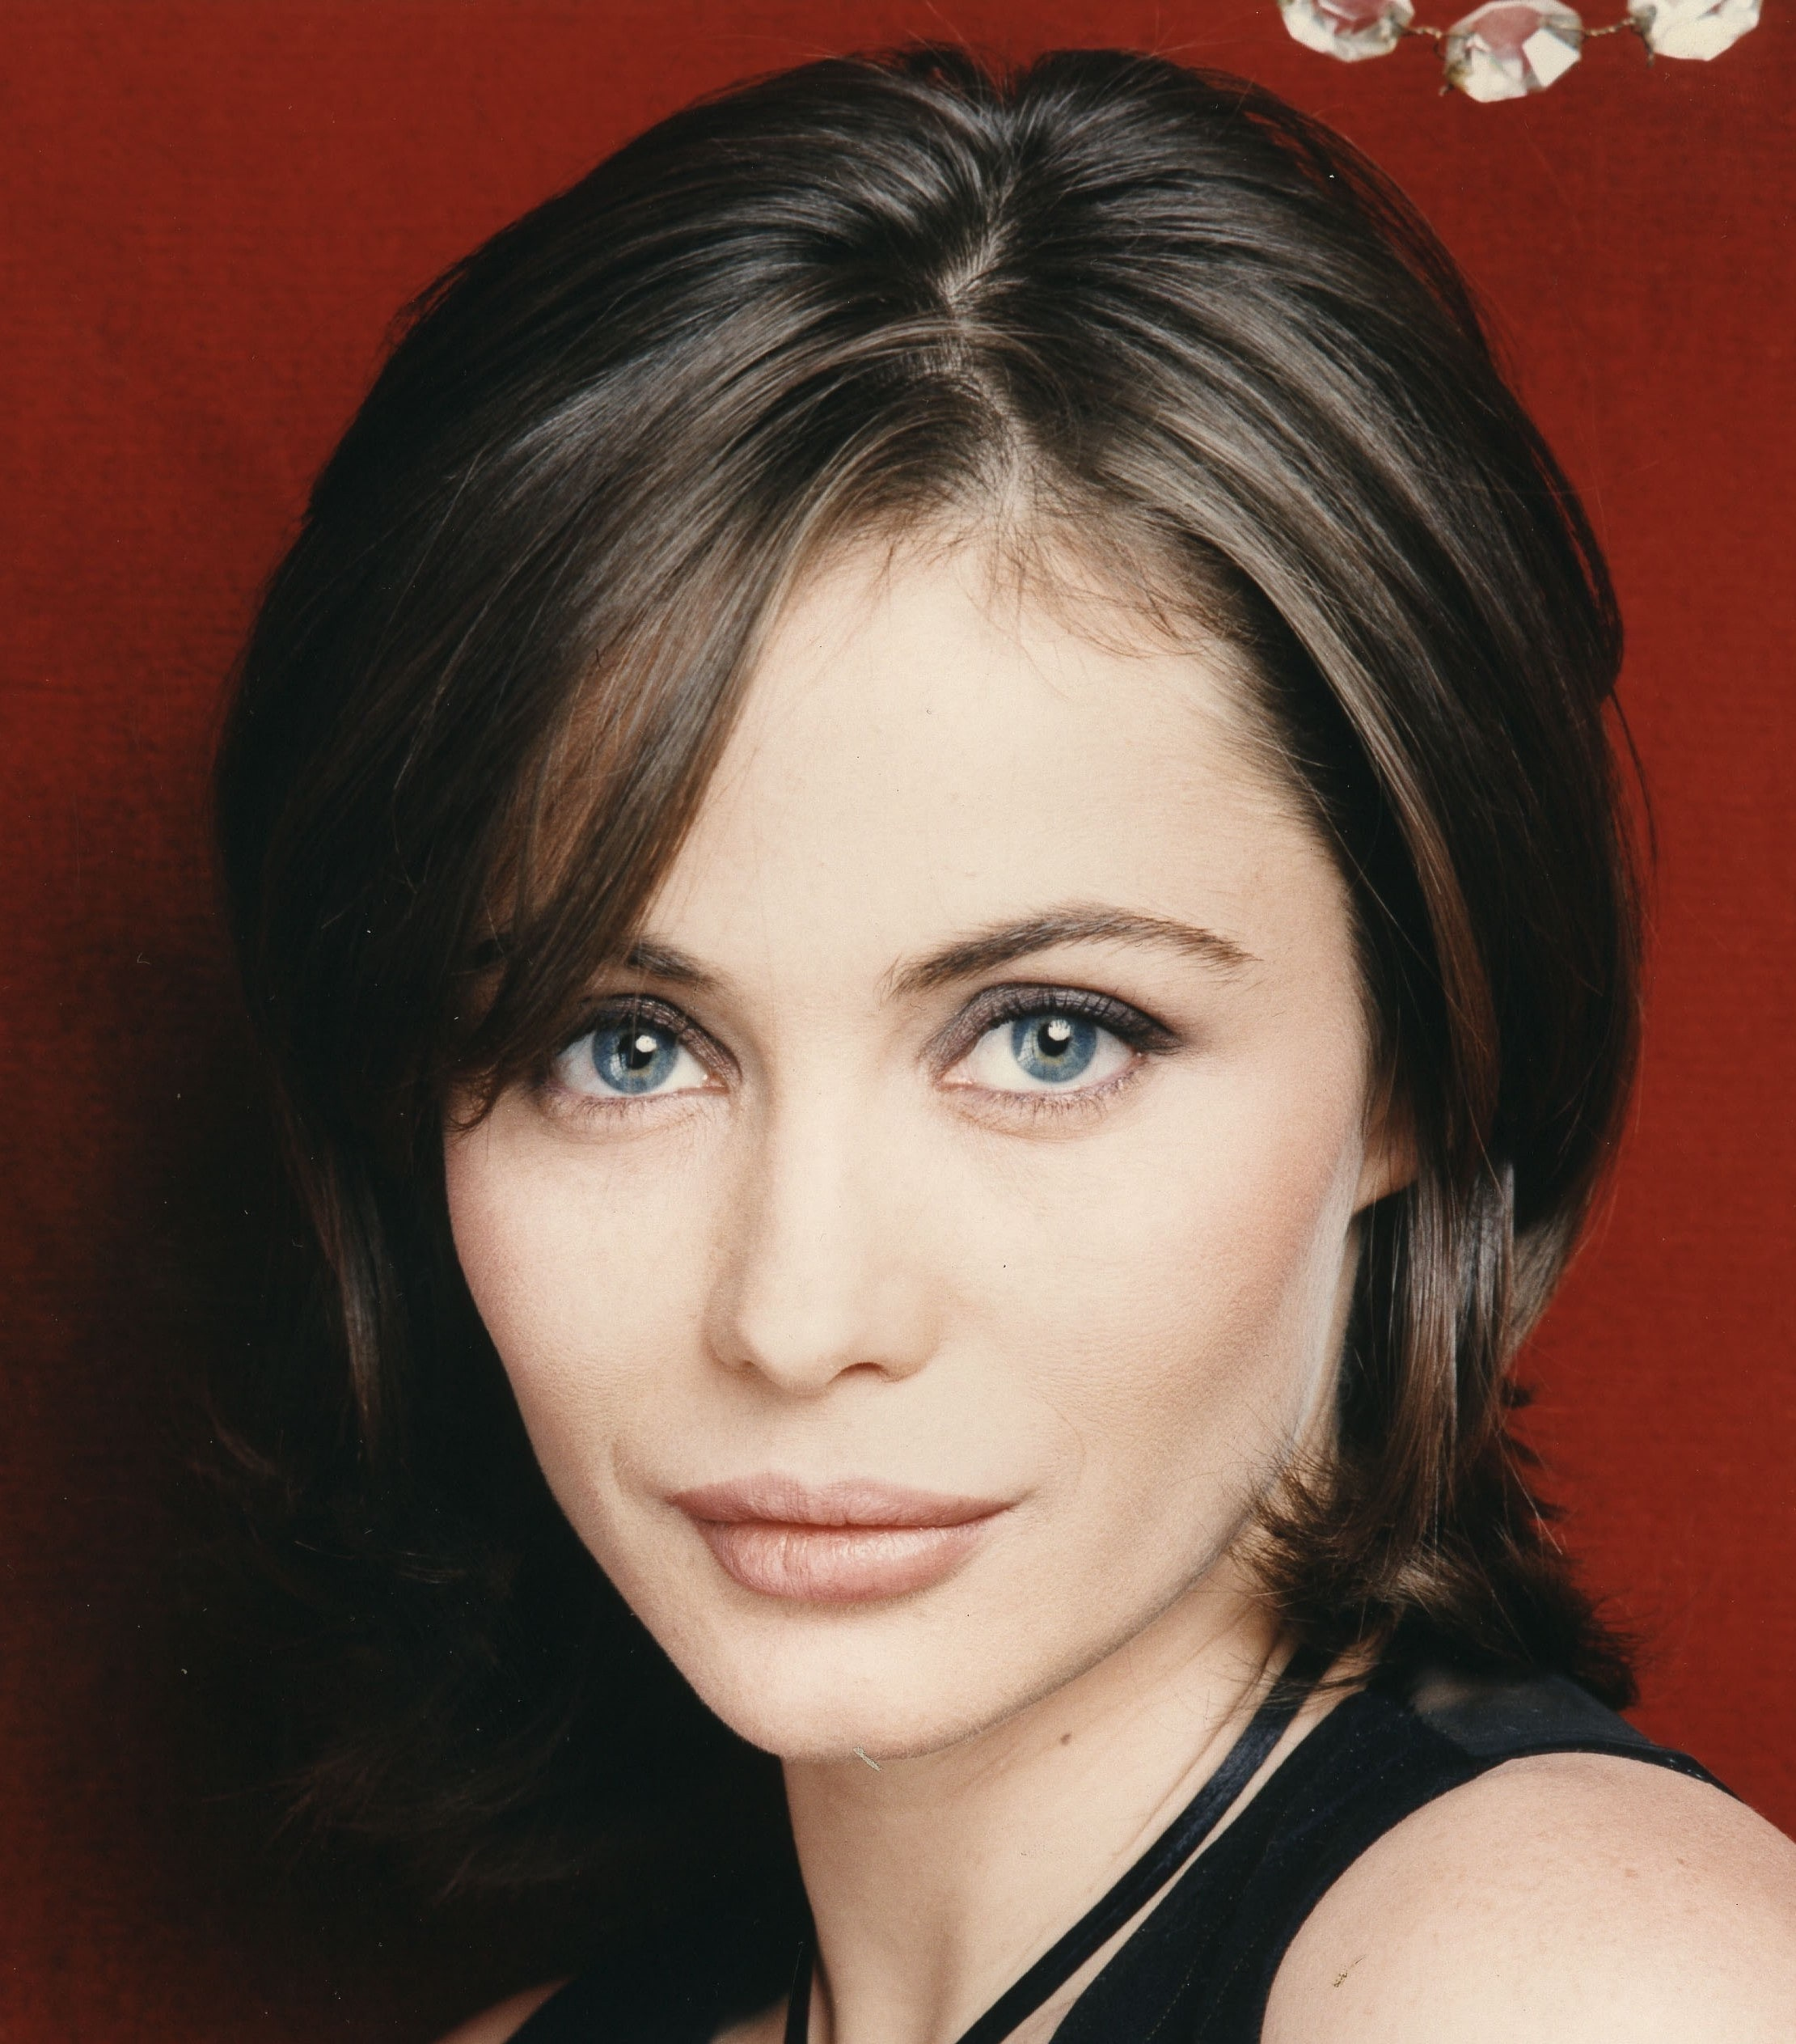 Emmanuelle Beart Wallpapers